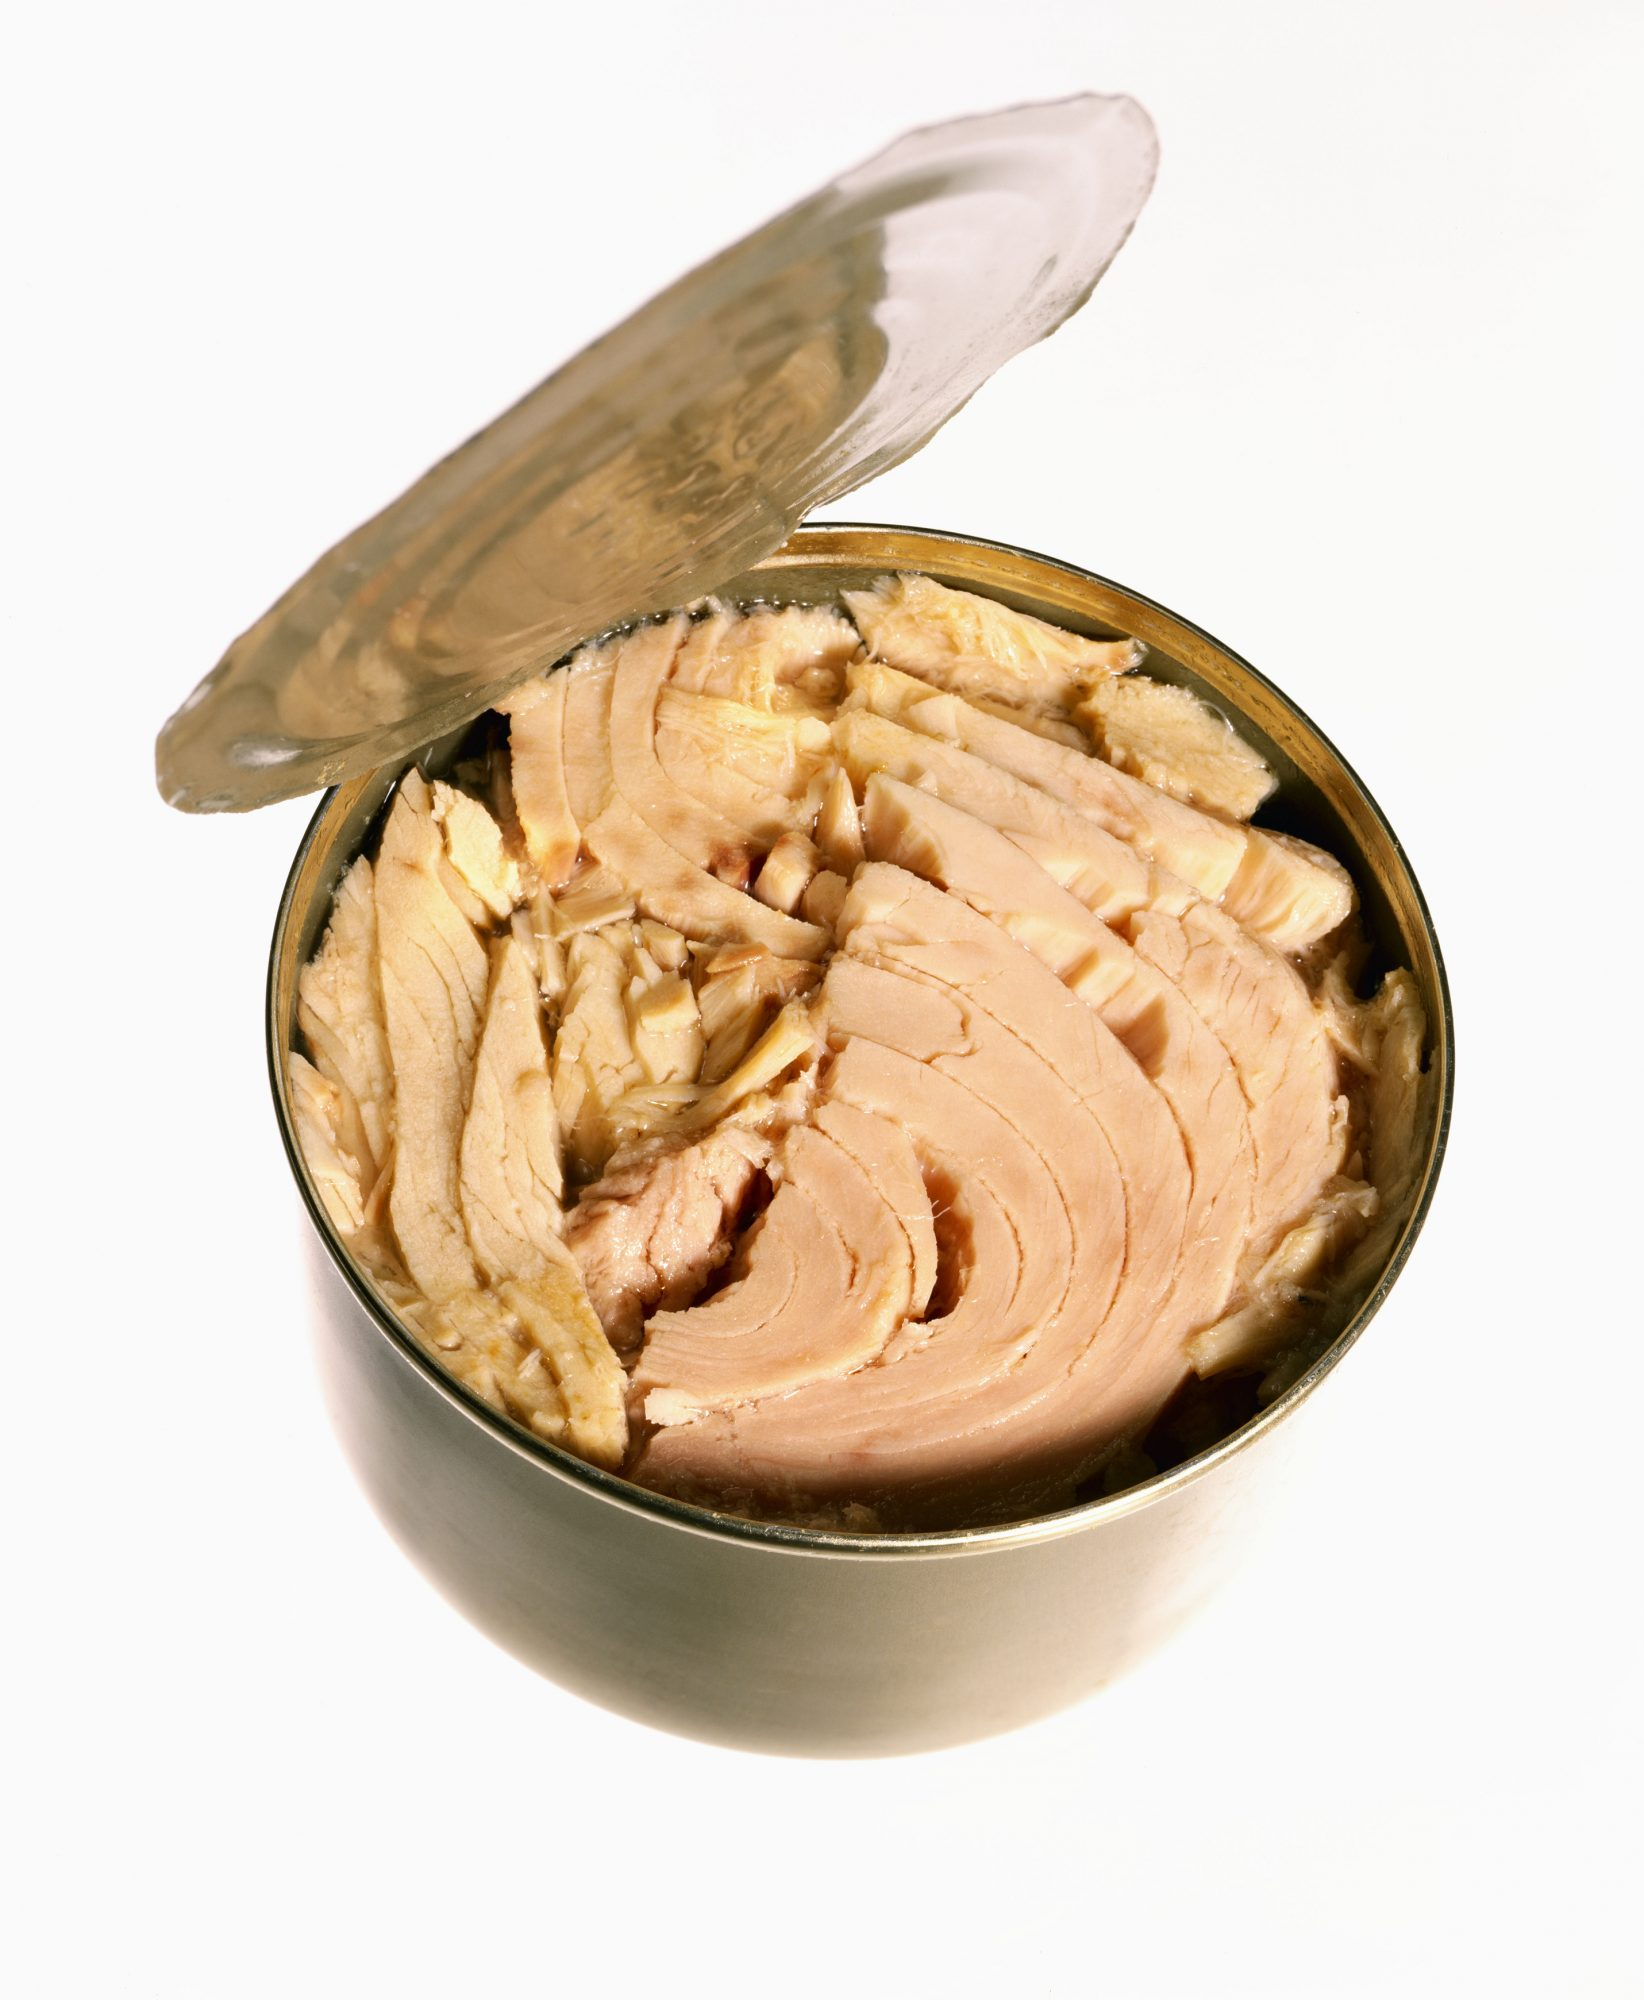 getty-canned-tuna-image